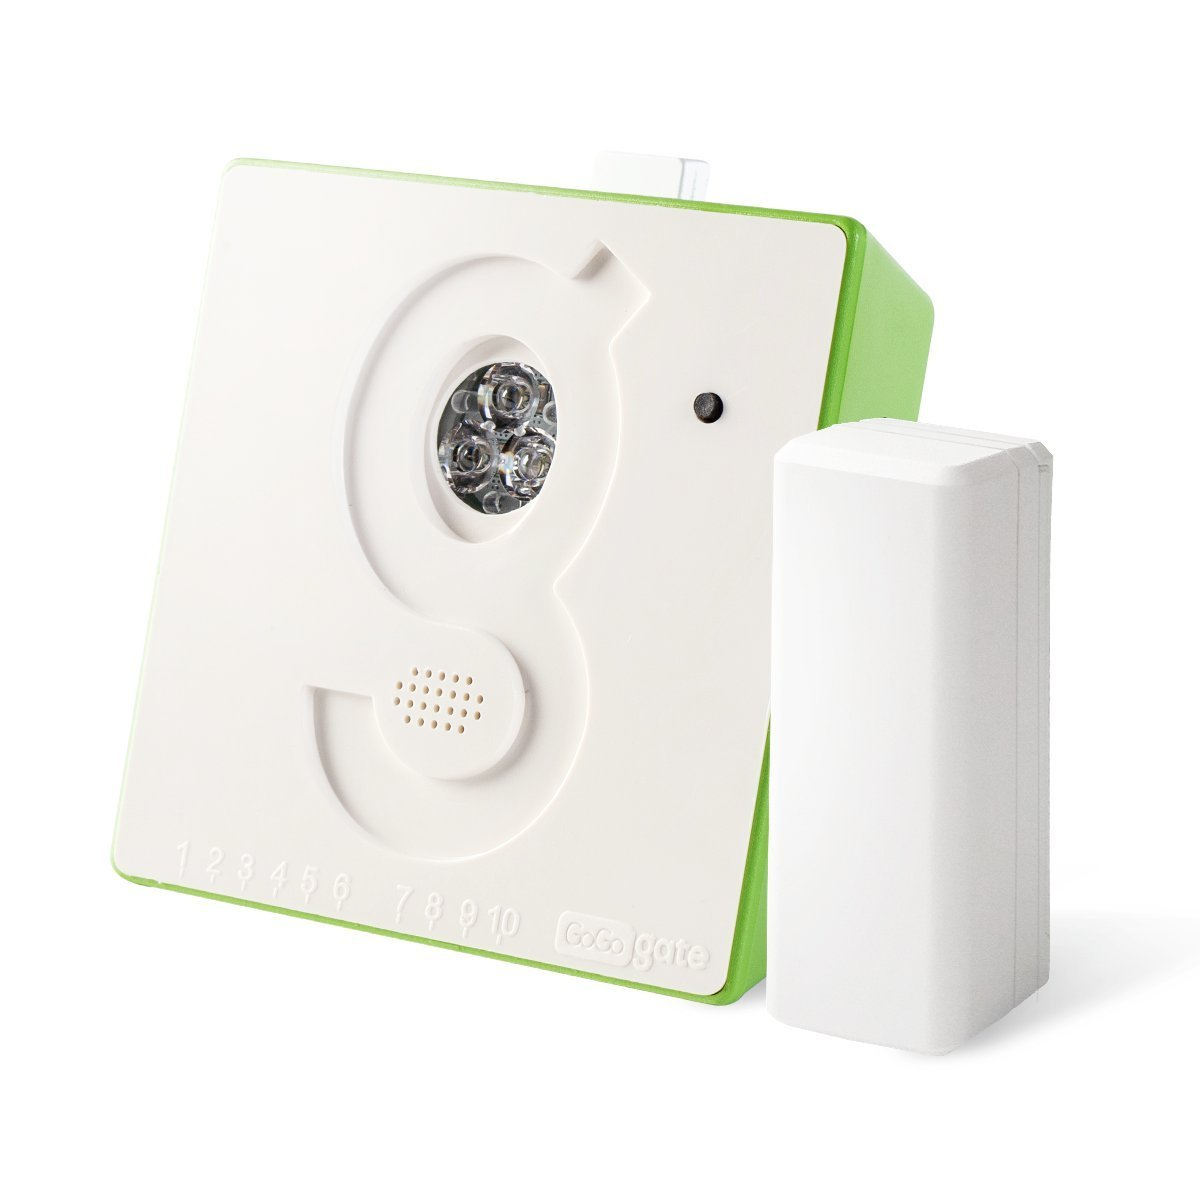 Gogogate 2 smart garage door opener